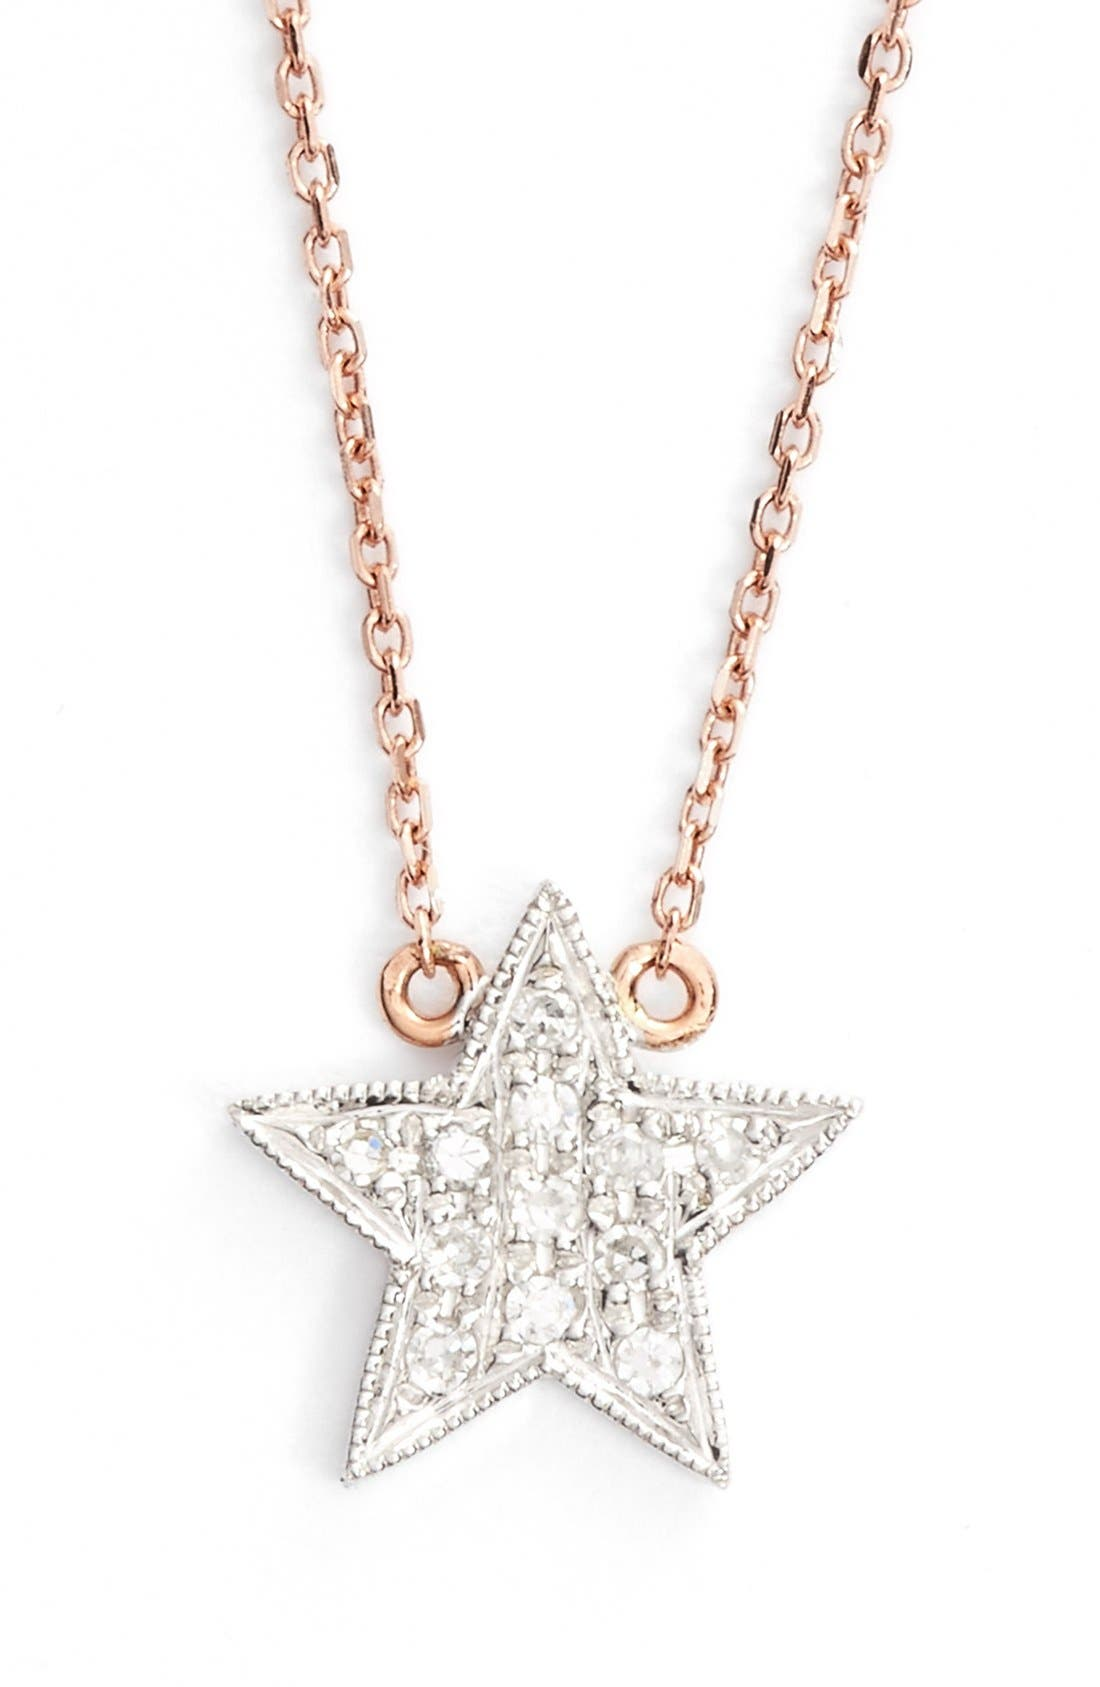 Main Image - Dana Rebecca Designs 'Julianne Himiko' Diamond Star Pendant Necklace